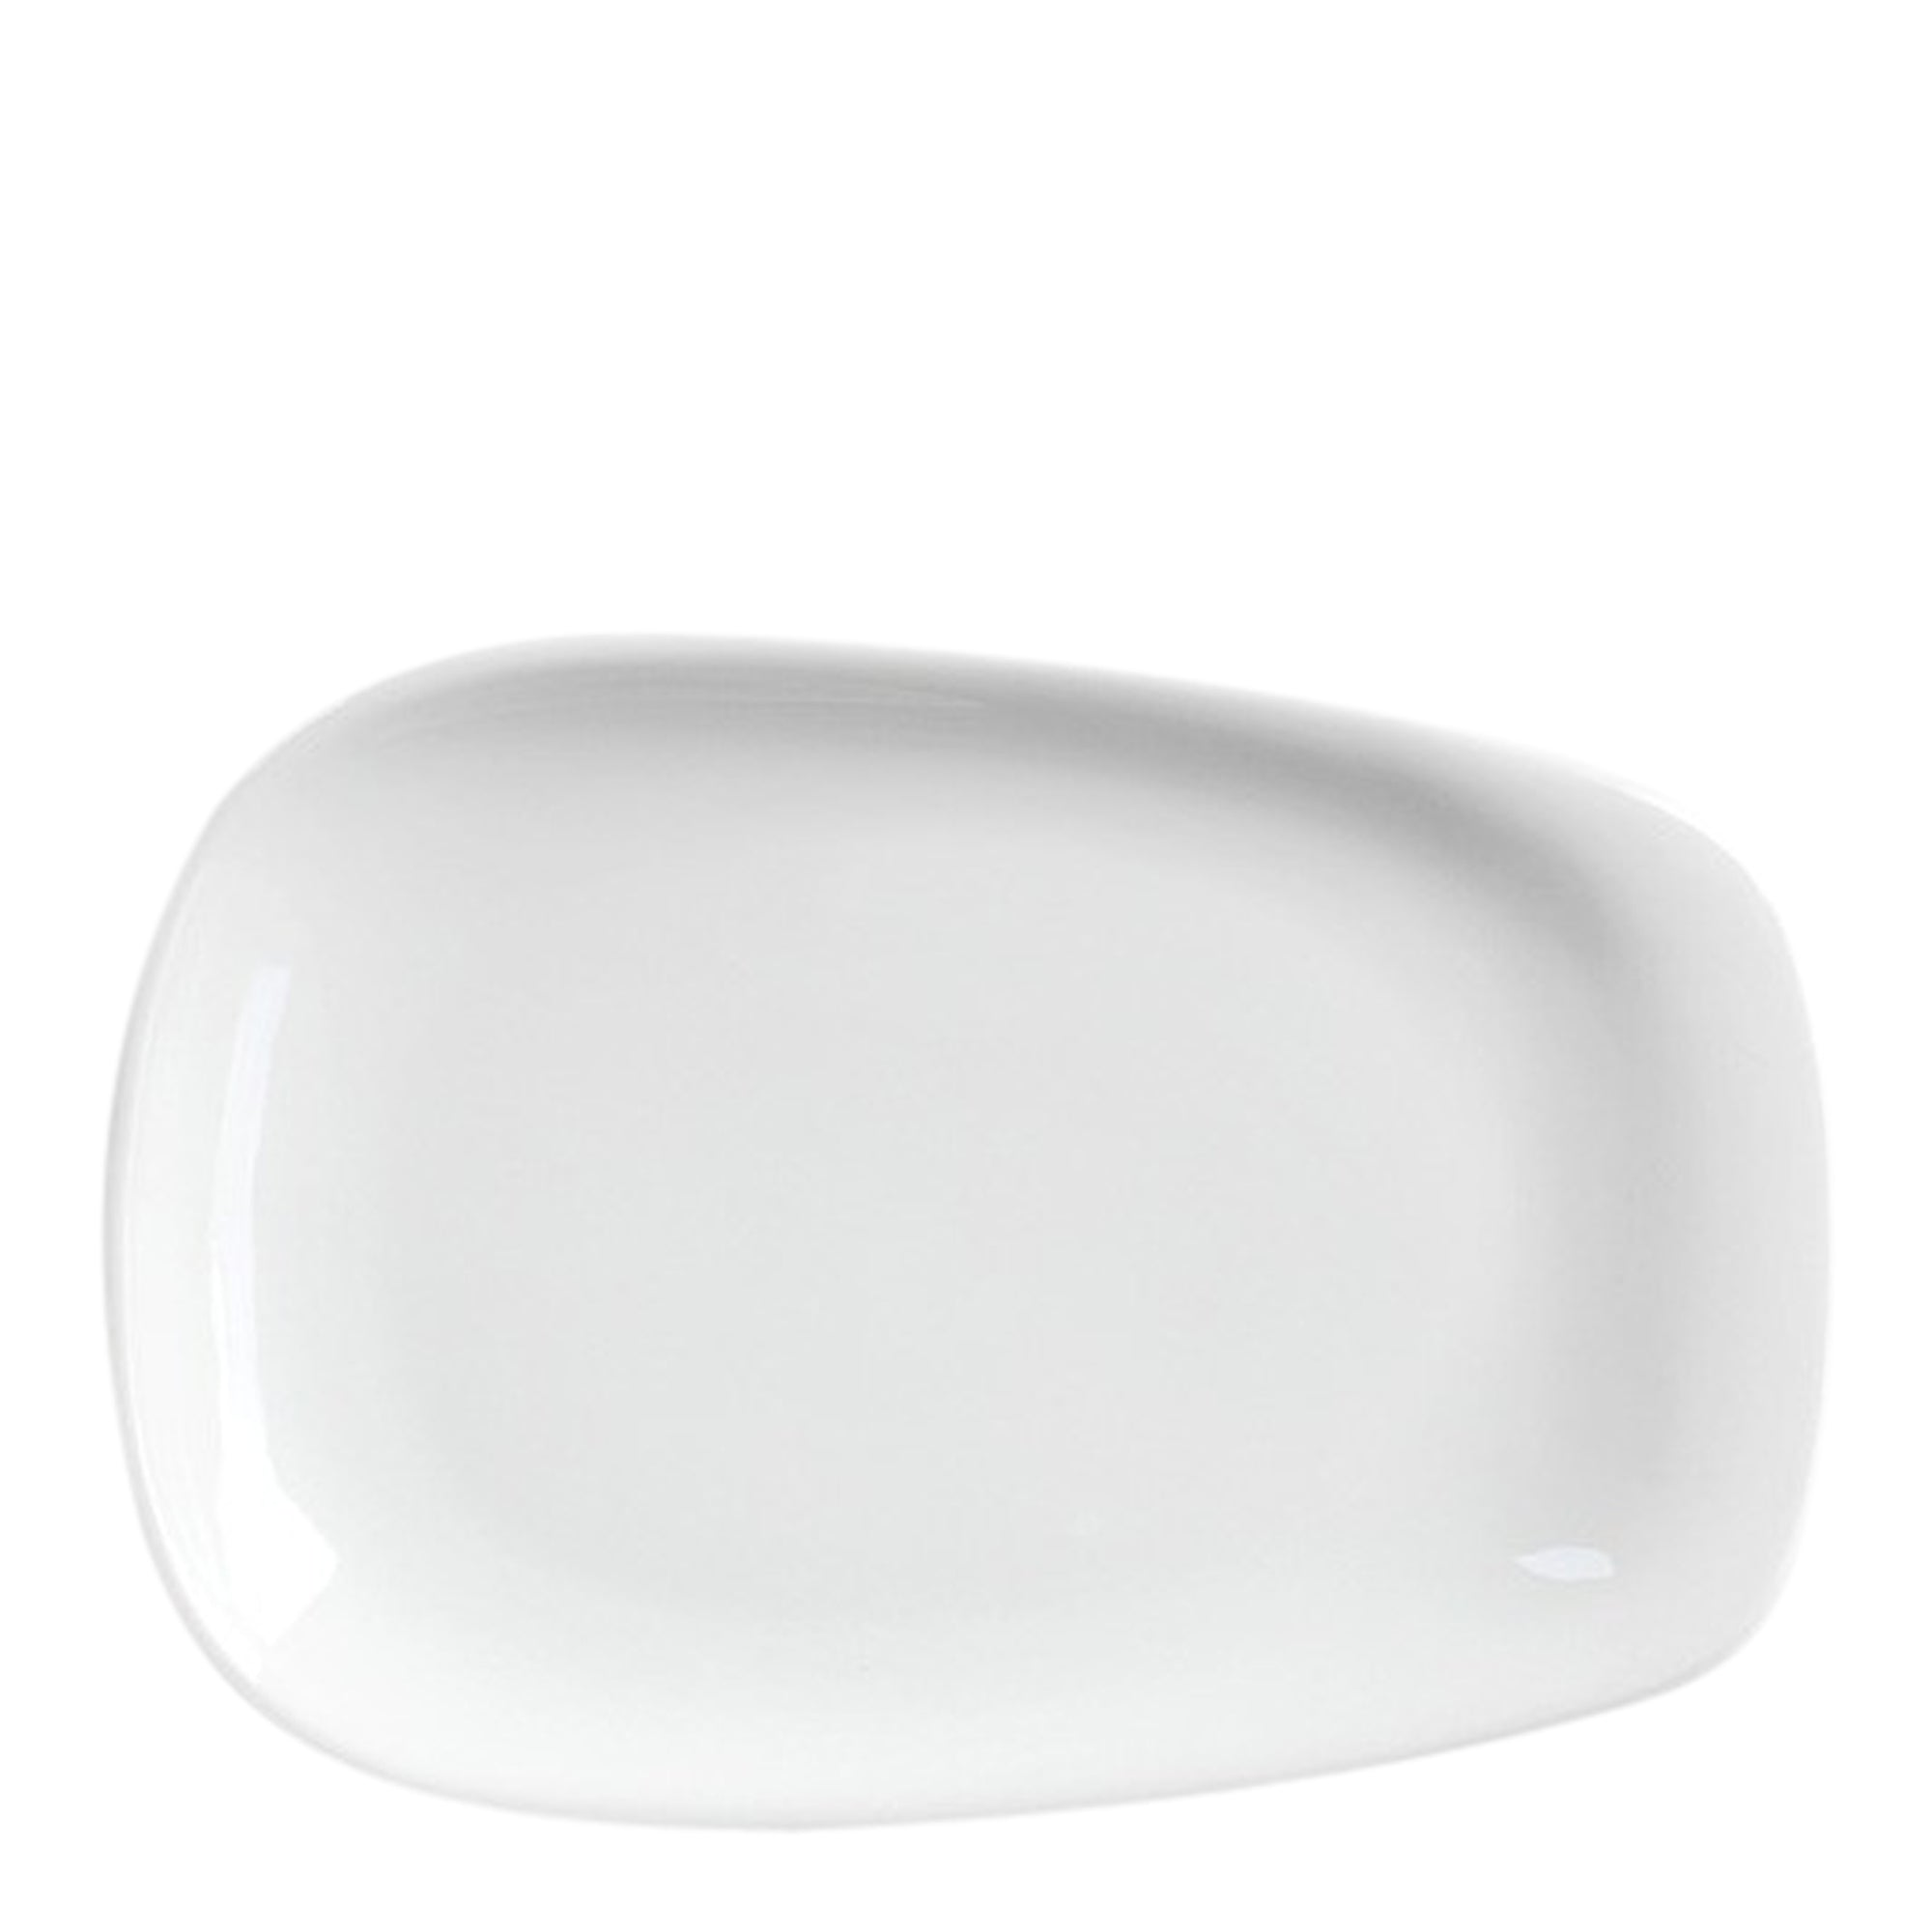 Porcelain Pulled Plate - NotNeutral - Espresso Gear